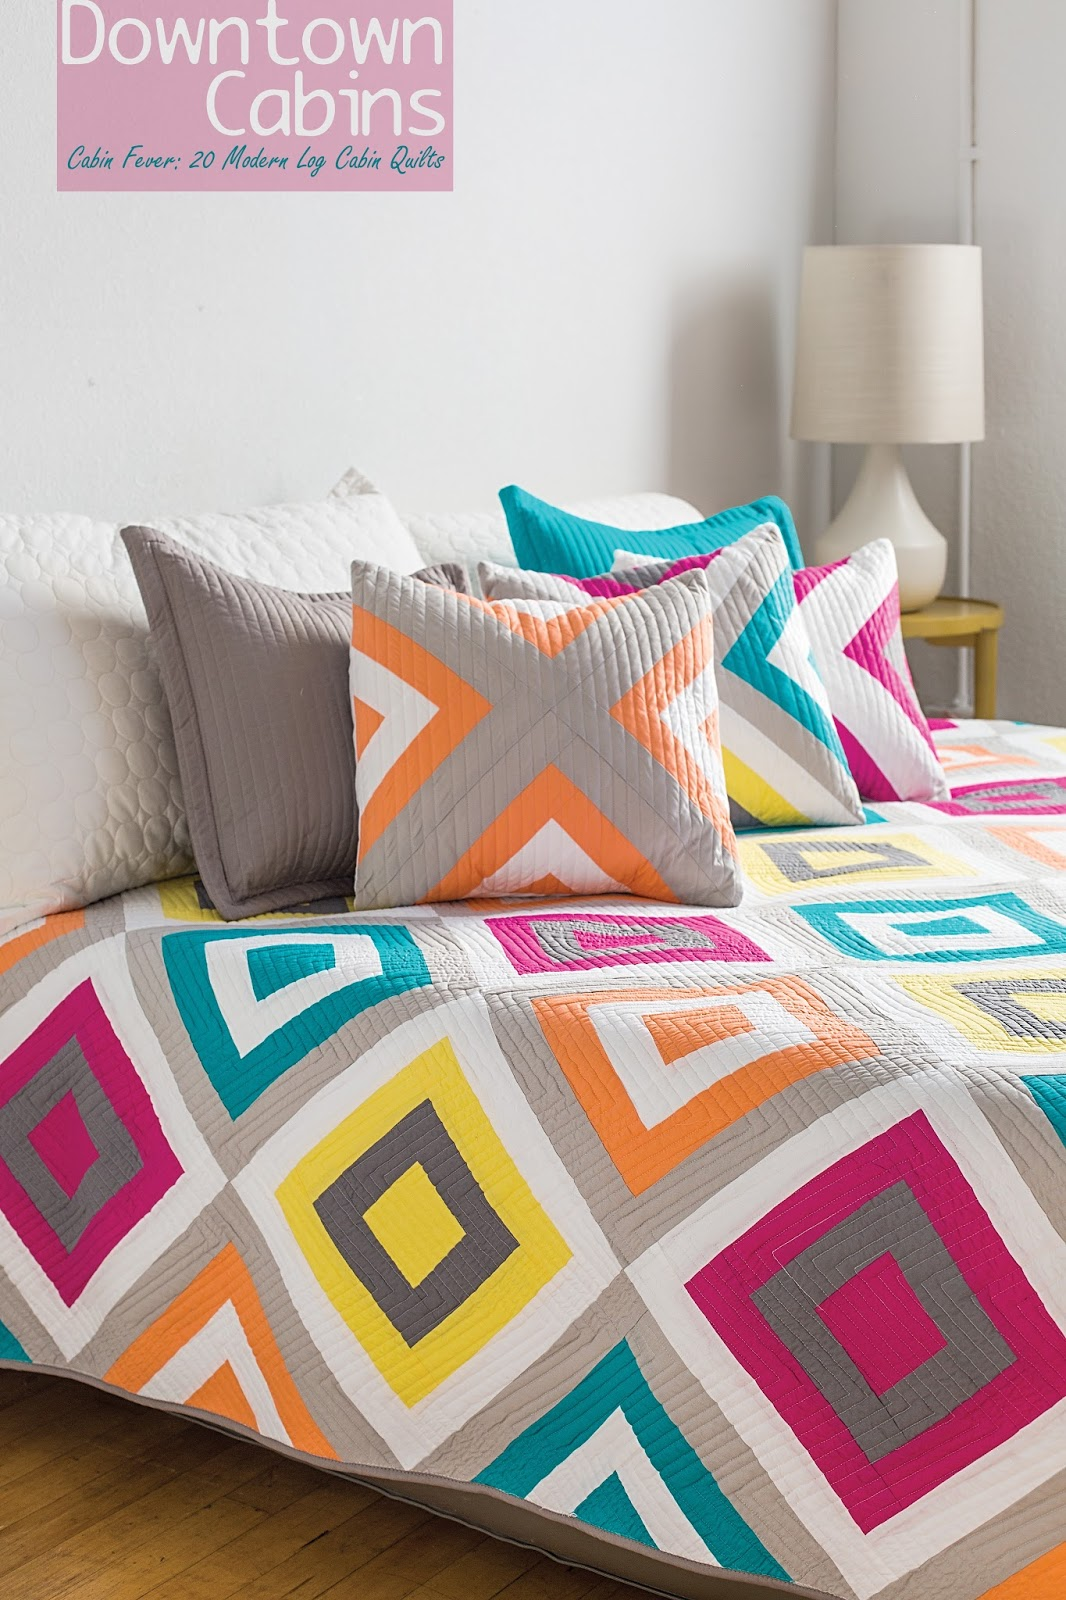 Log Cabin Quilts ~ Piece n quilt downtown cabins cabin fever modern